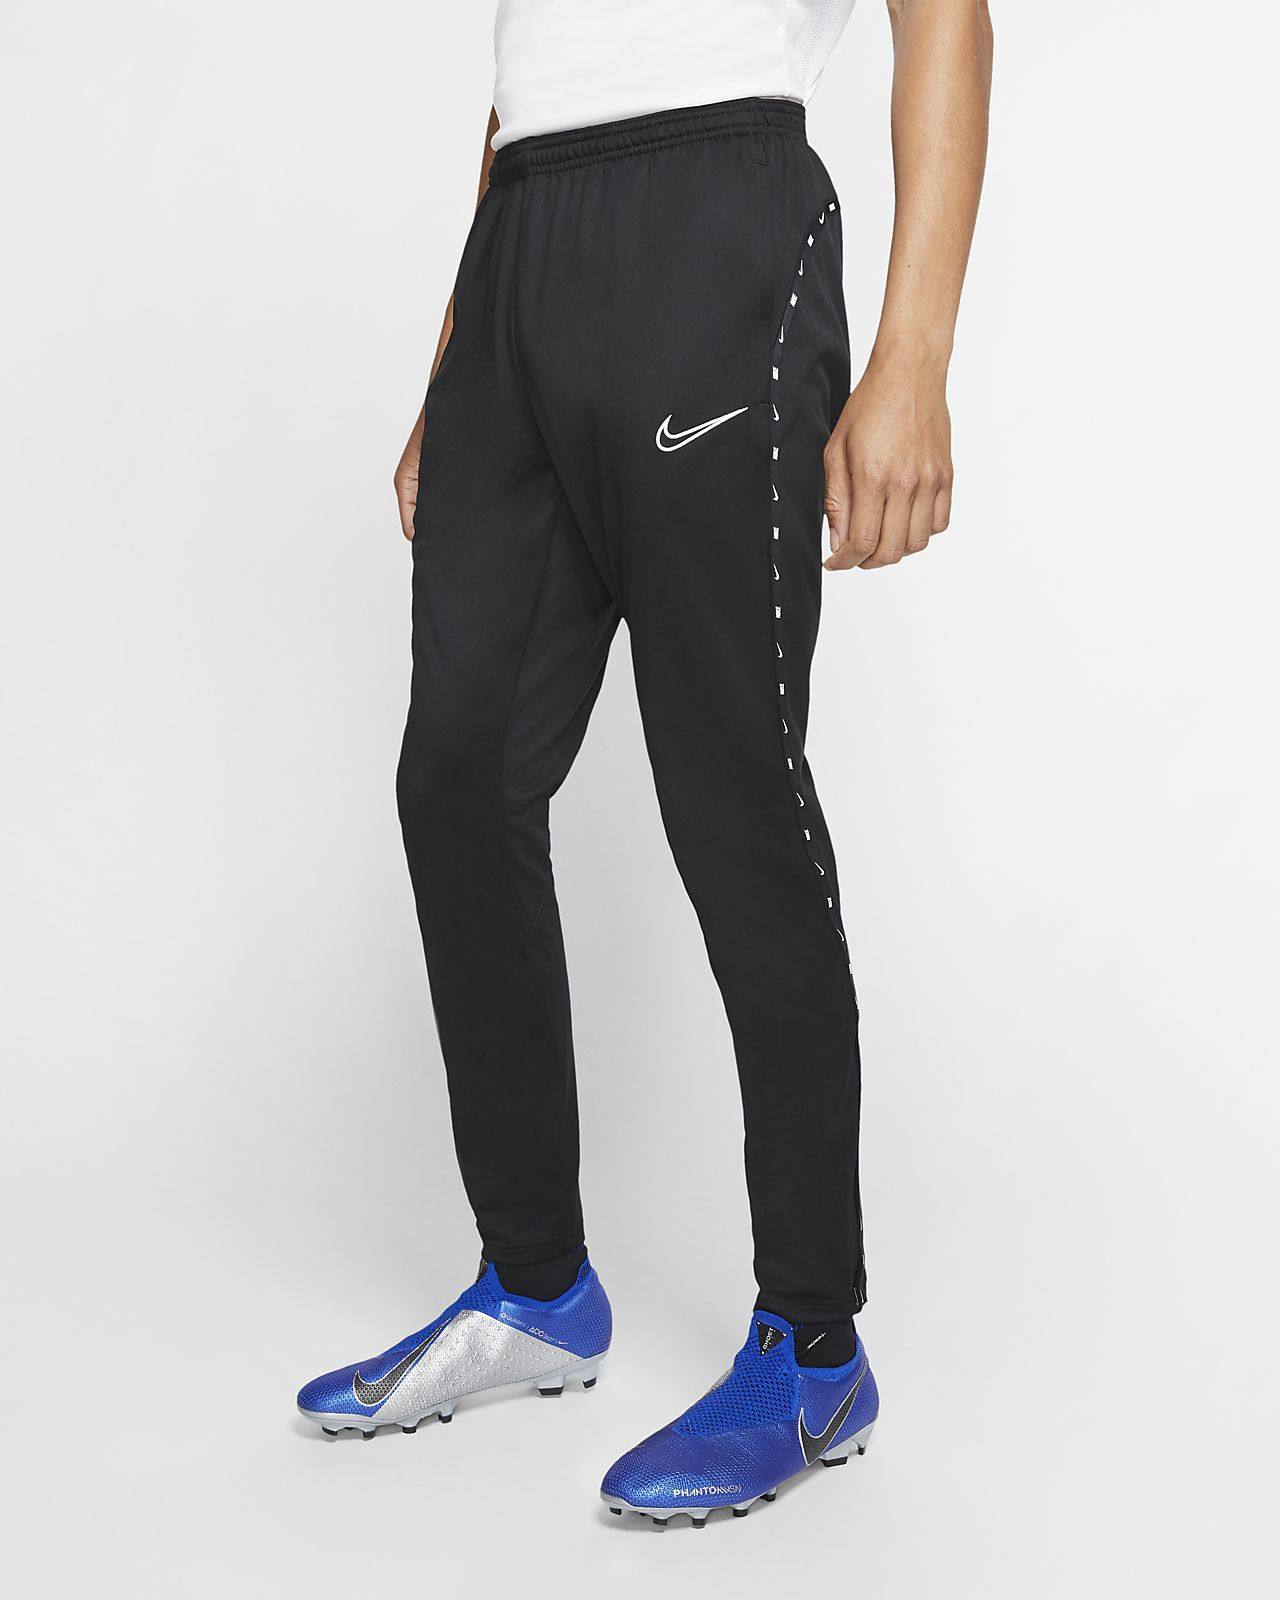 pantalon nike homme football